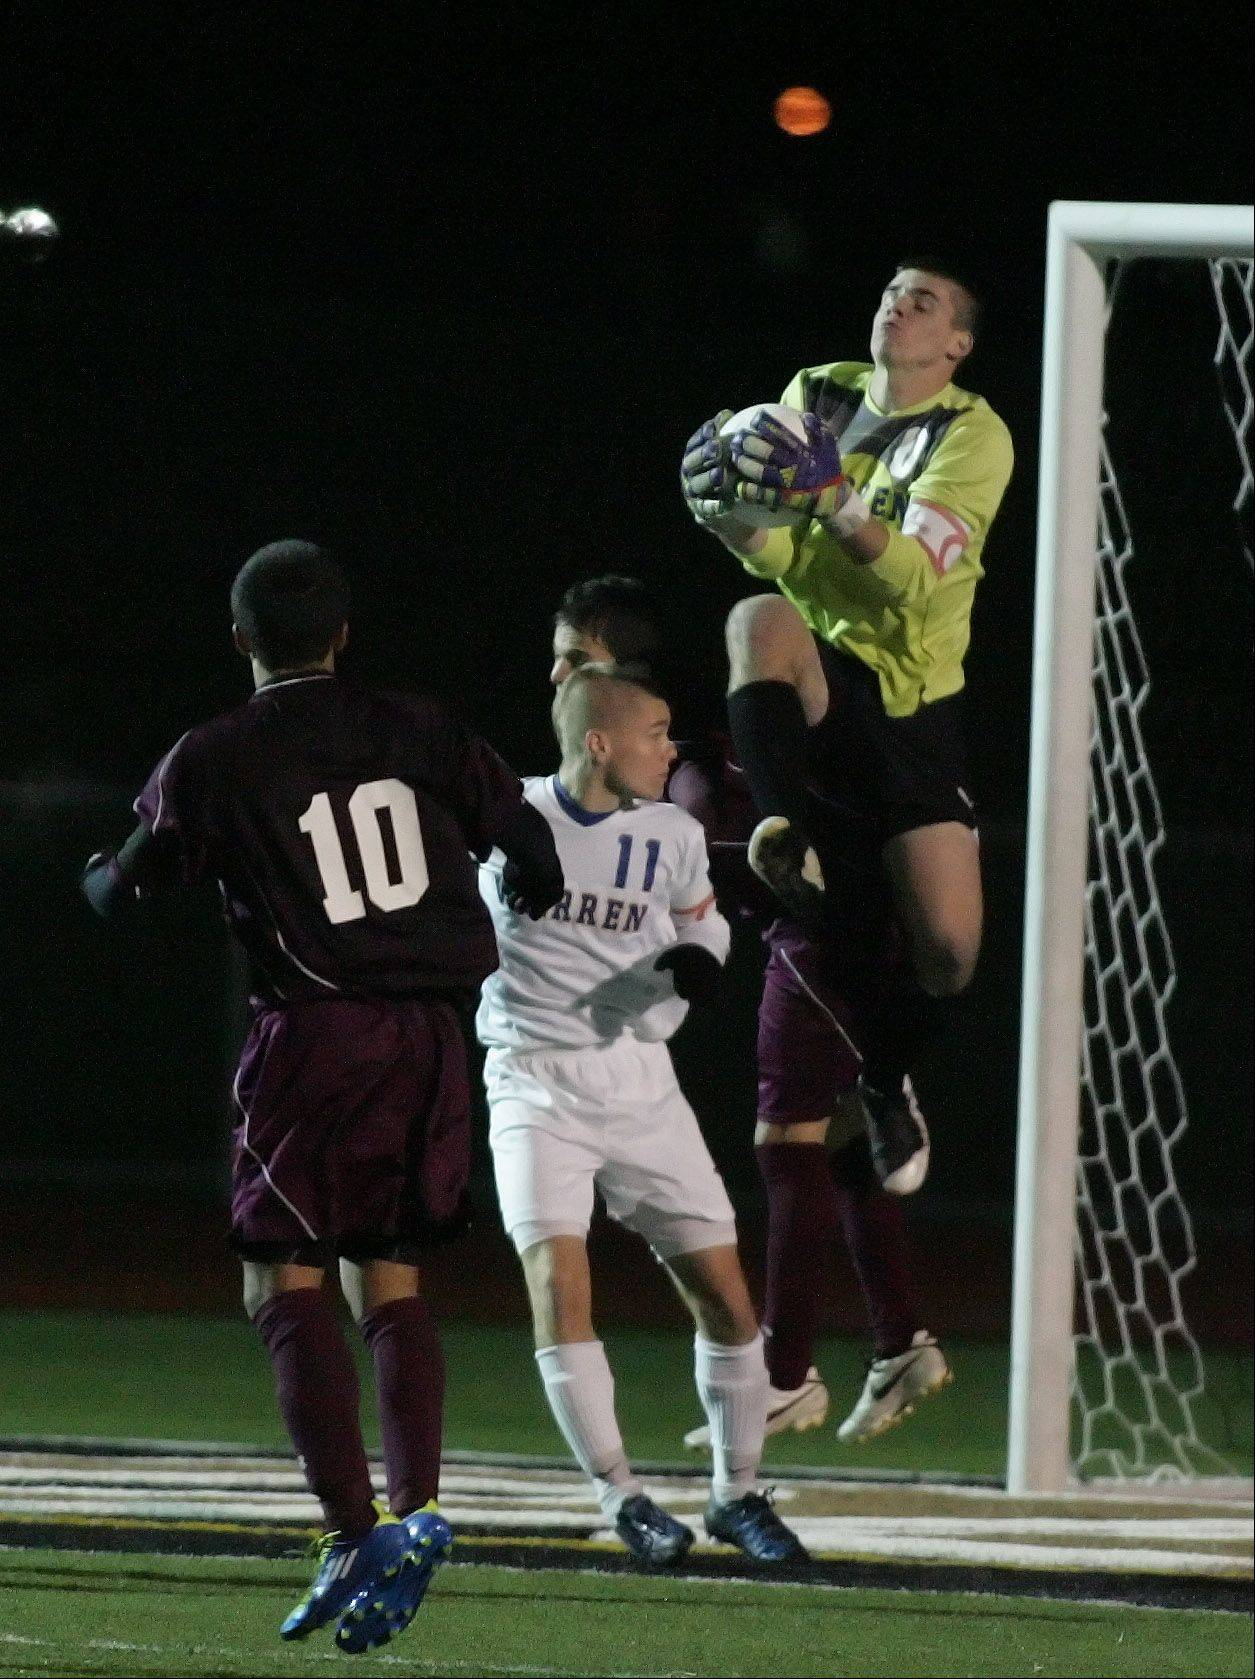 Warren Goalkeeper Brady Walsh makes a save in action against Morton in Class 3A state soccer semifinals Friday at Lincoln-Way North High School in Frankfort.